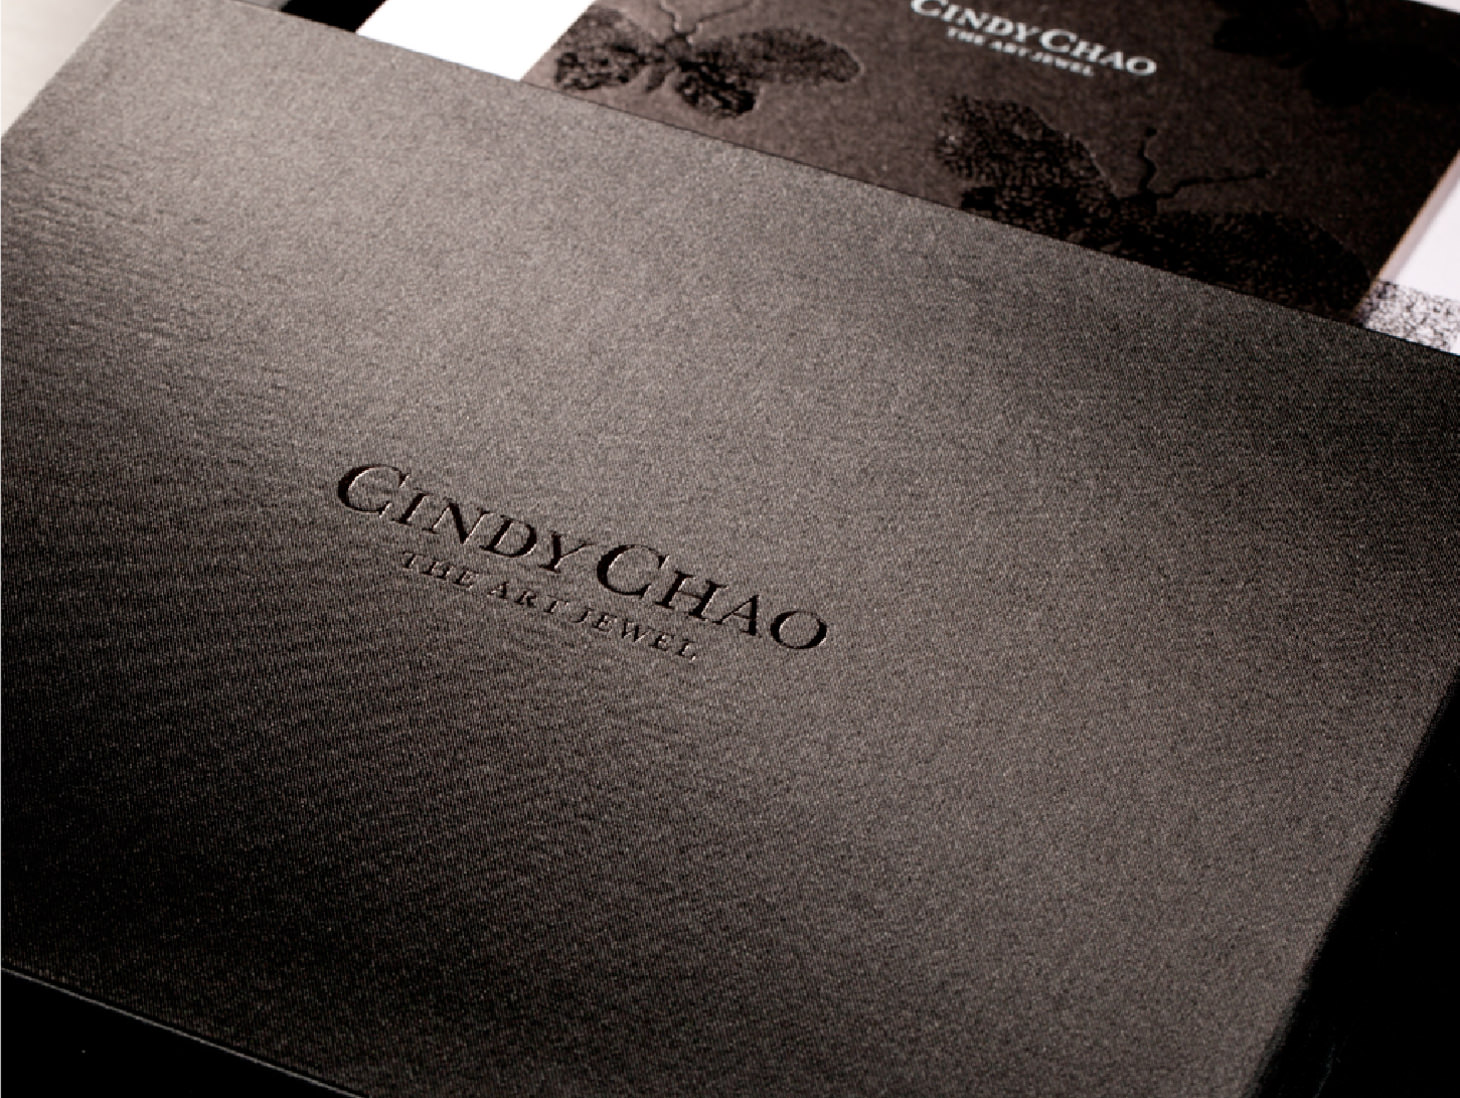 CINDYCHAO_Stationary_07.jpg